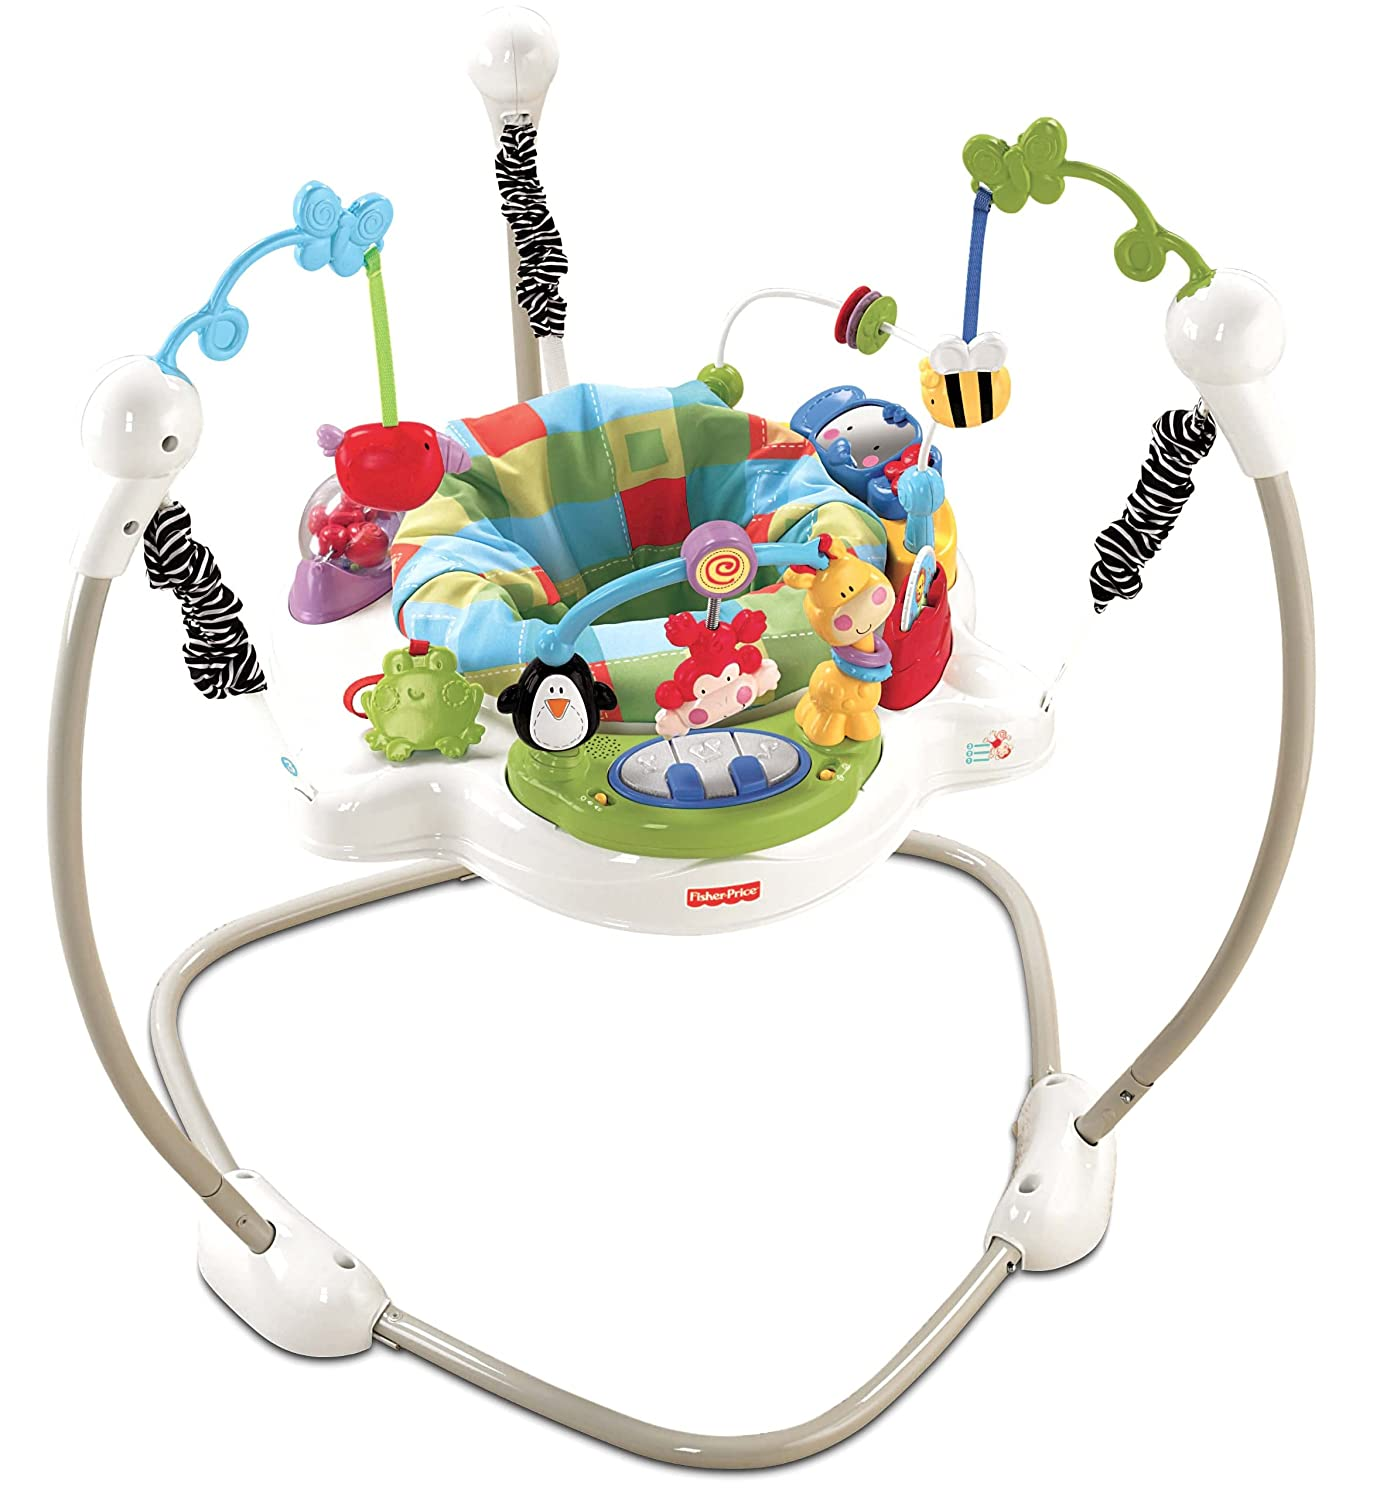 Baby Einstein Musical Motion Activity Jumper | Baby Gear and Accessories